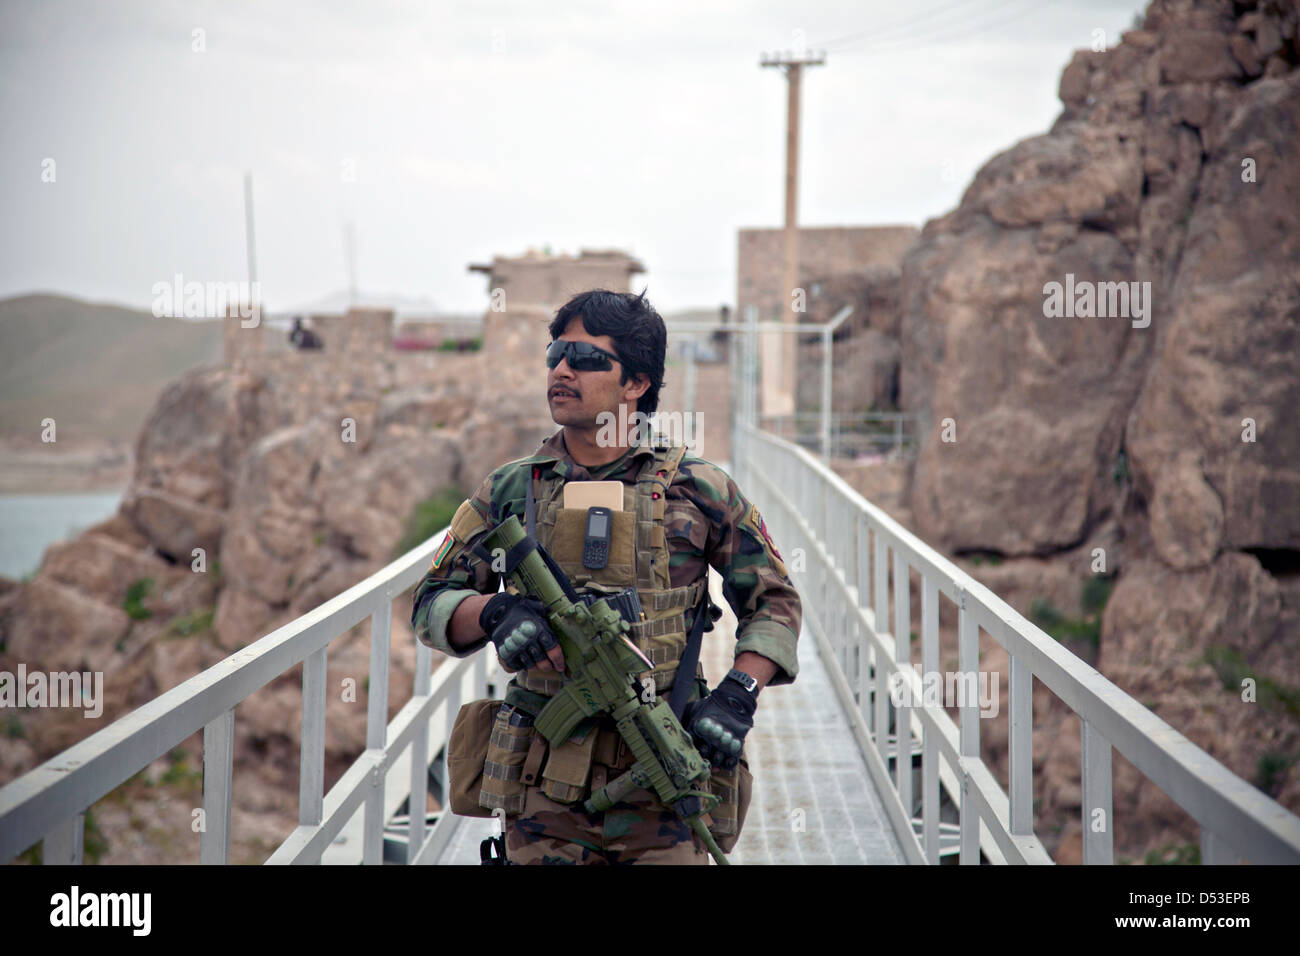 An Afghan National Army special operations forces soldier guards a hydro-electric dam march 22, 2013 in Helmand - Stock Image